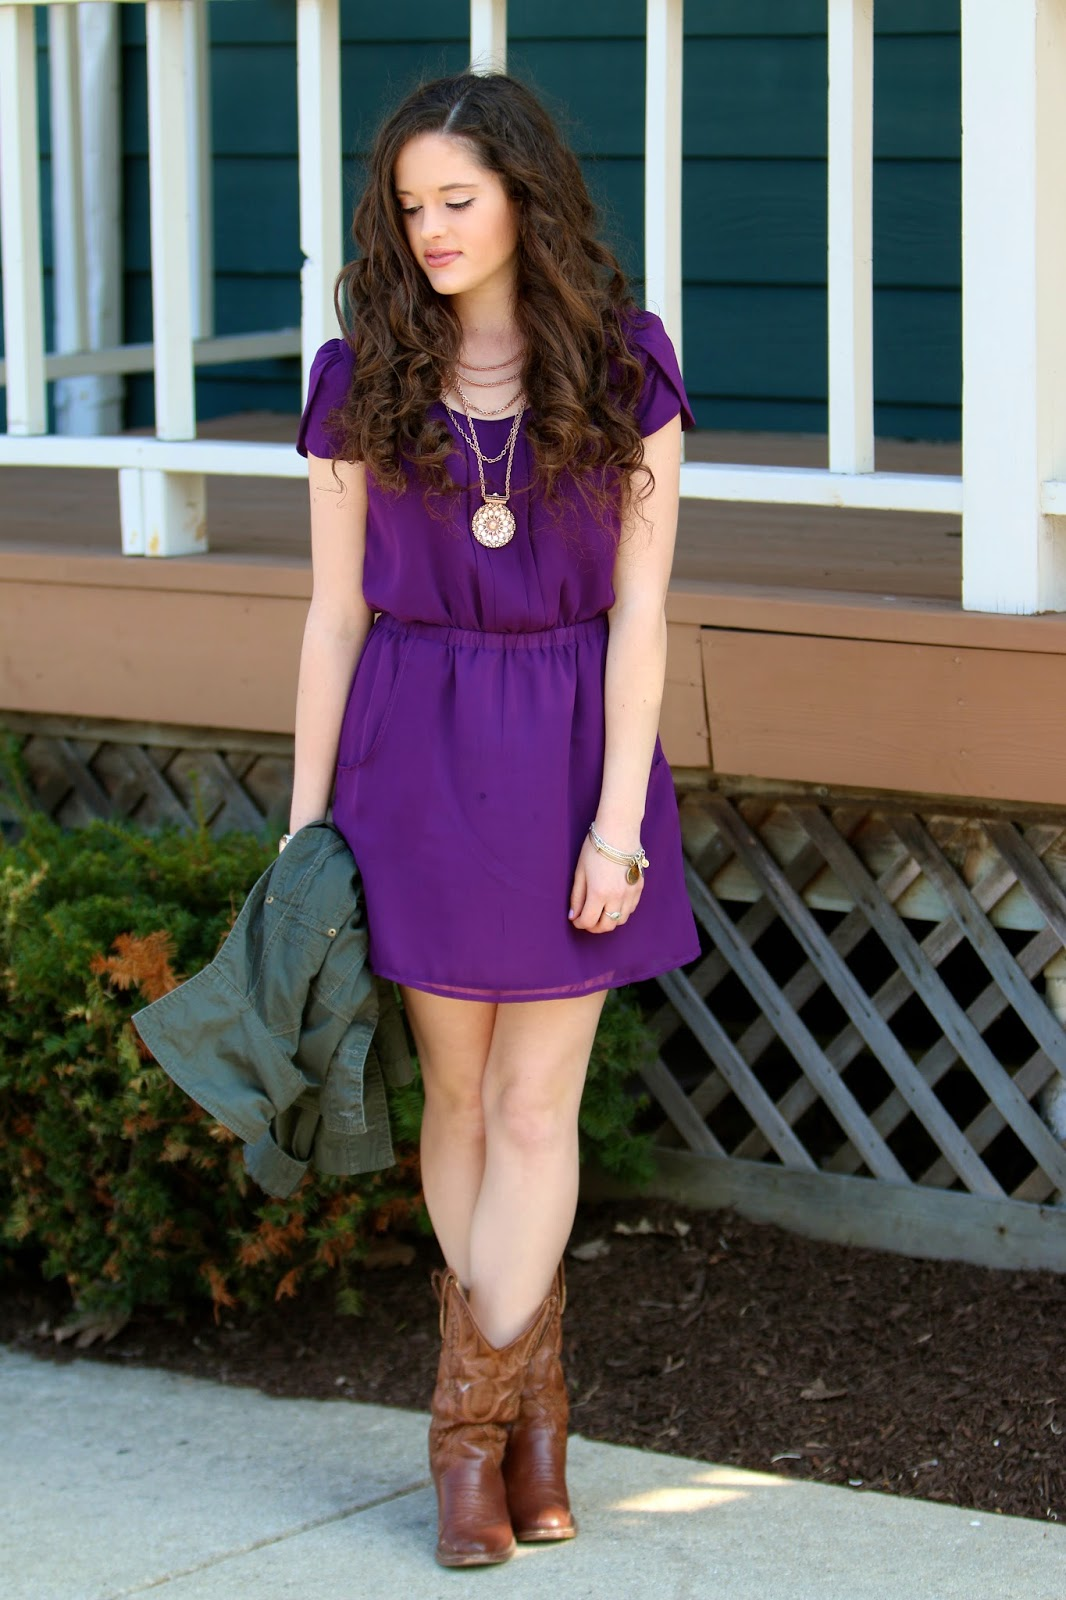 Purple Dress with Cowboy Boots